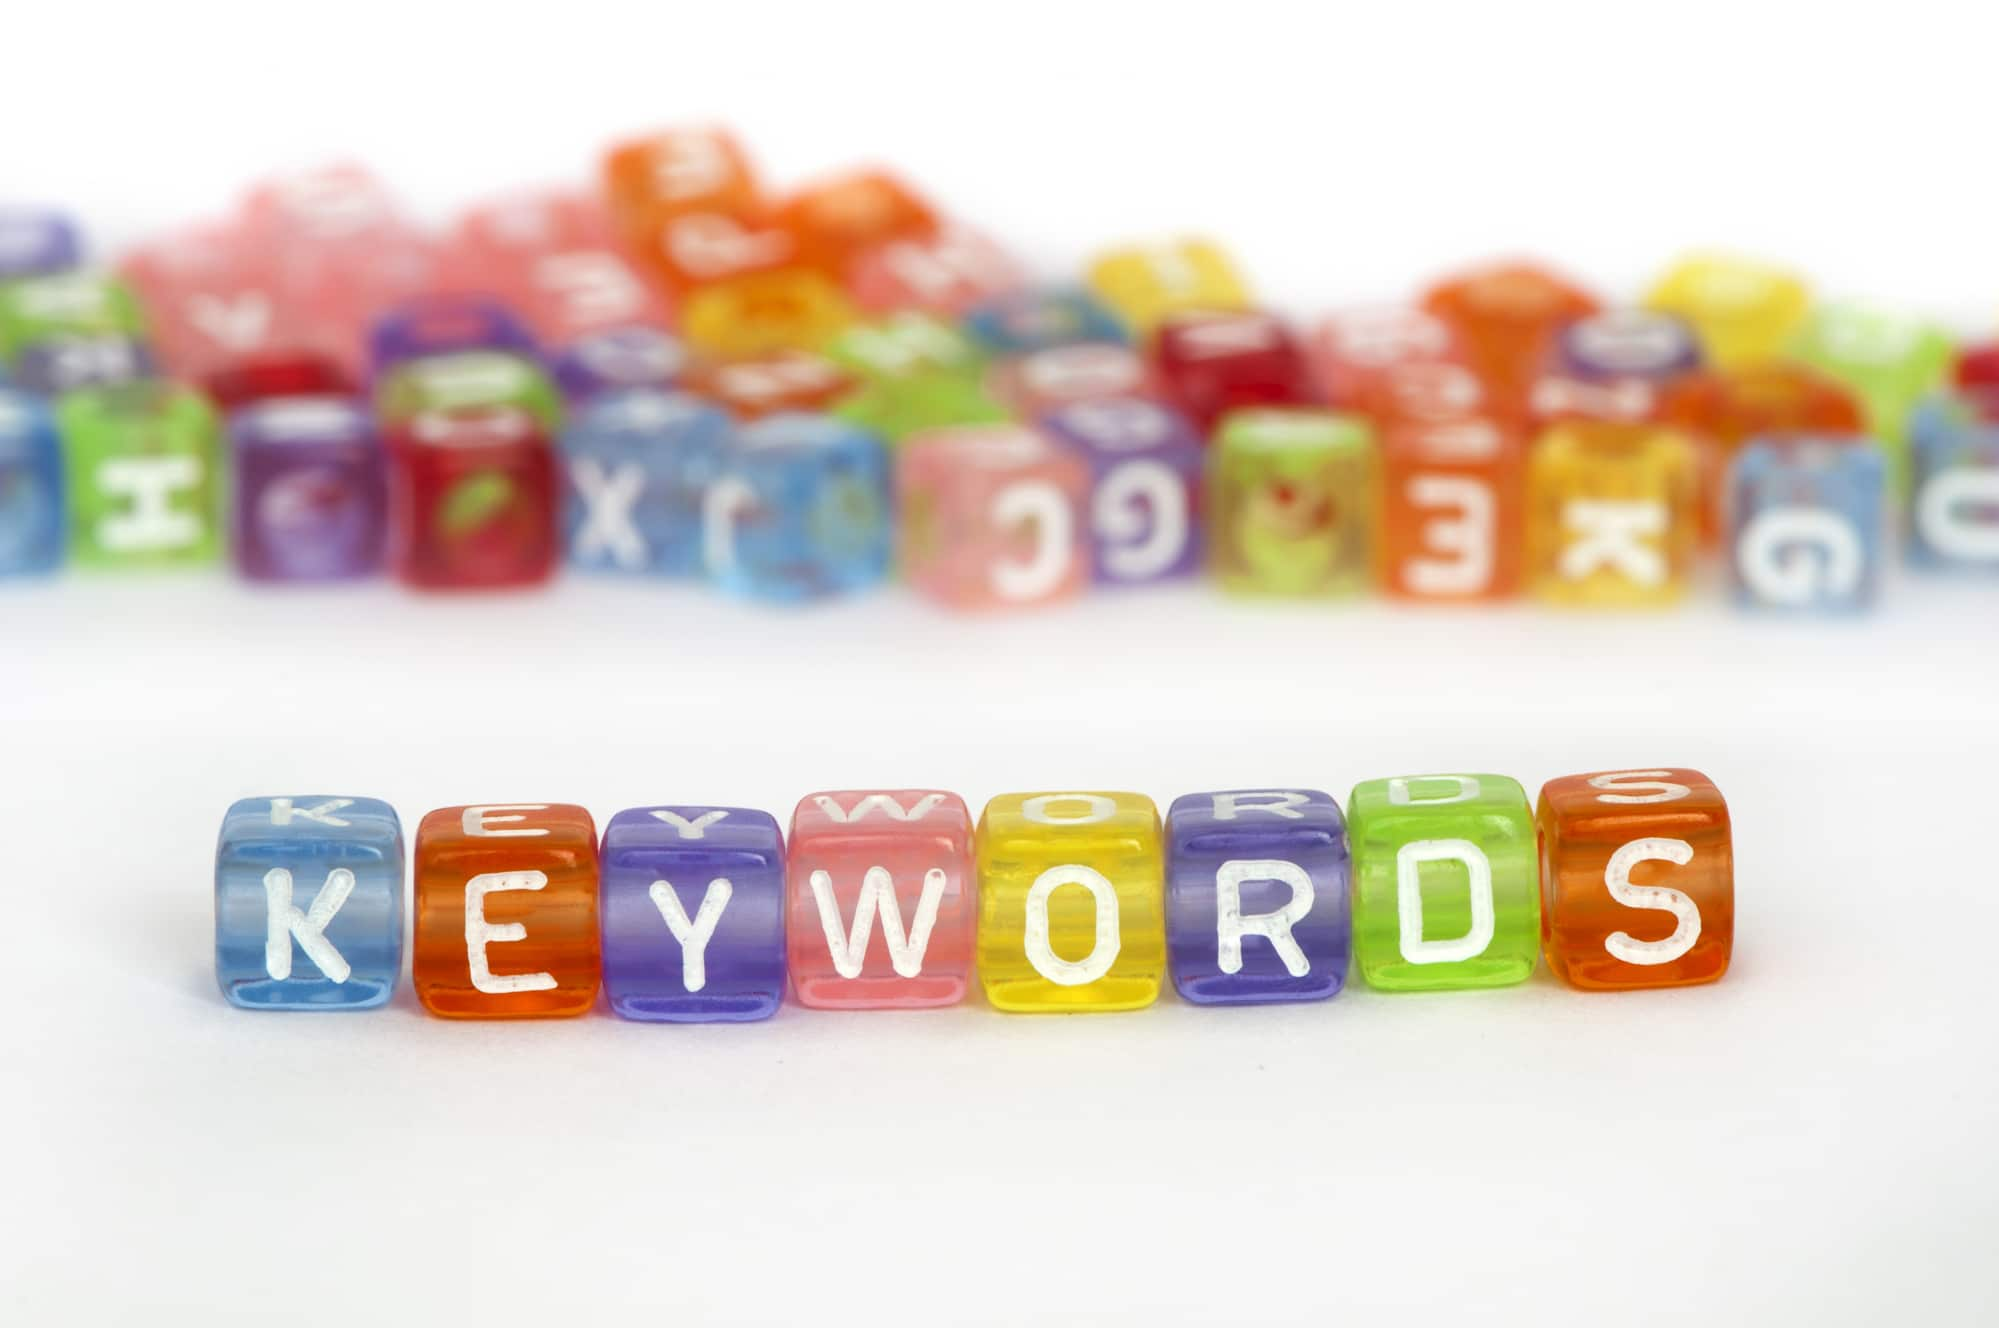 Use Keywords in Your Domain Name